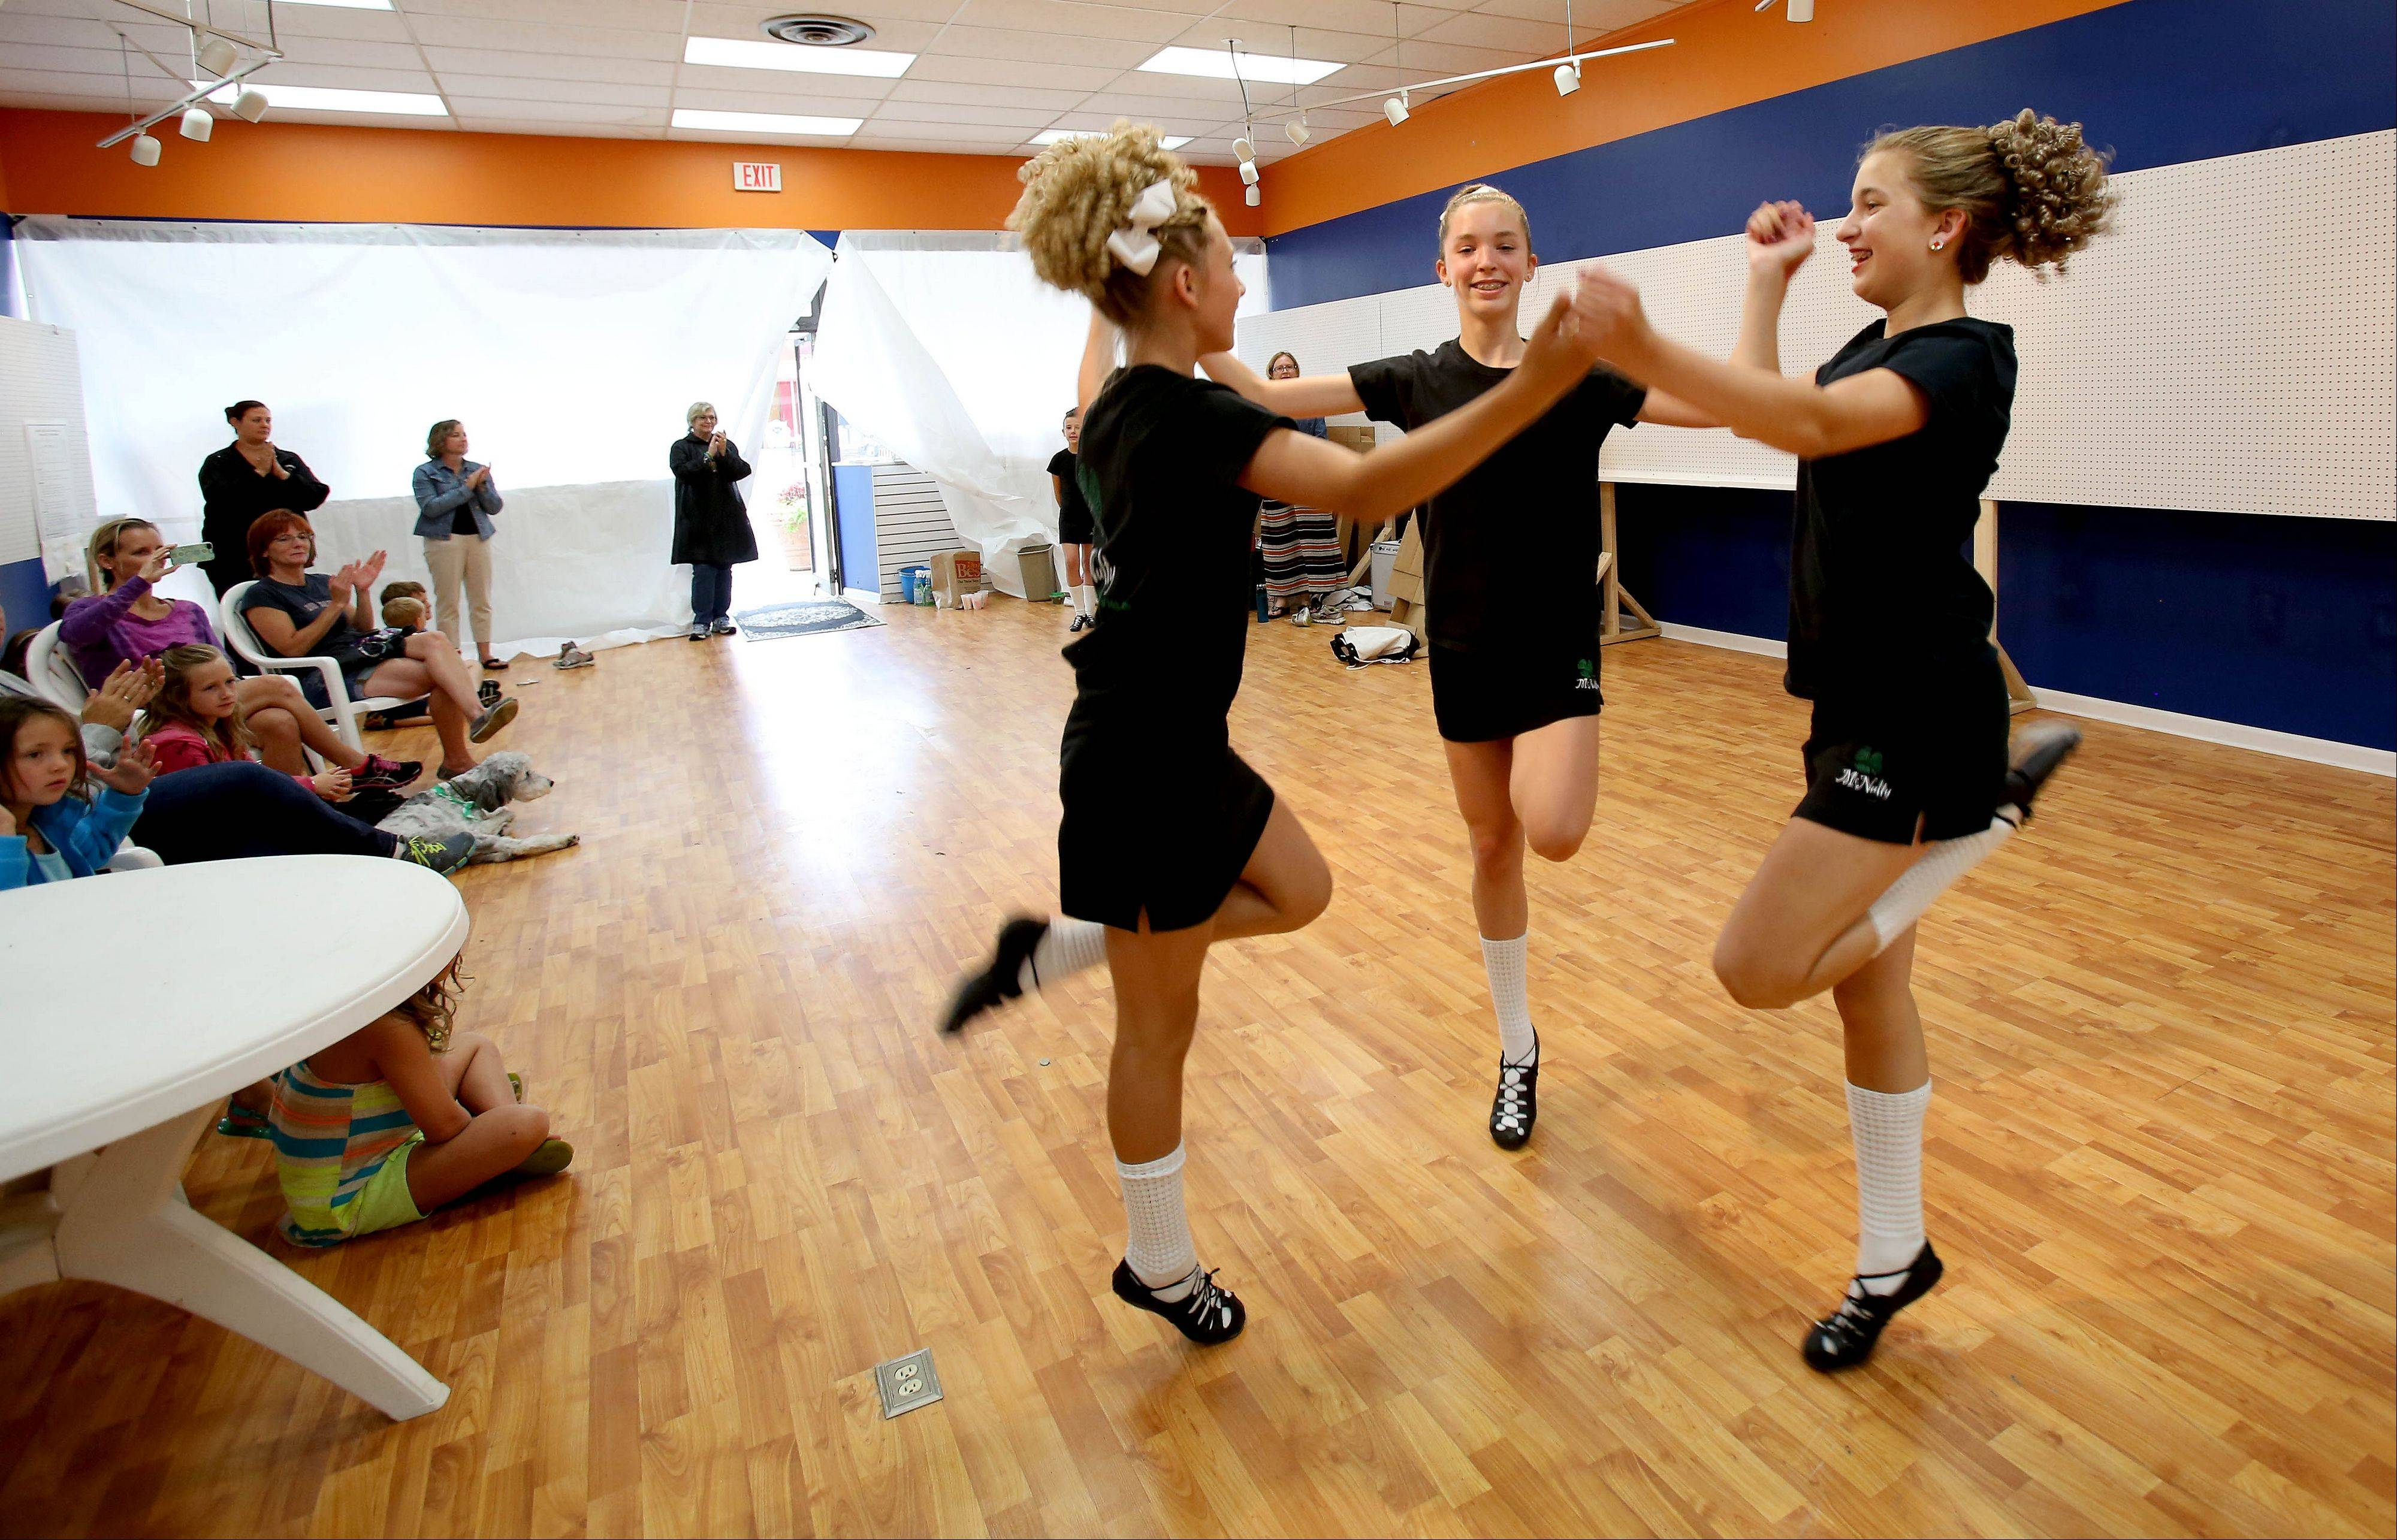 Left to right, Julia Robleski, 13, of Wheaton, Dana Scholtens, 16, of Wheaton, and Kendall McPartlin, 12, of Glen Ellyn, with the McNulty Irish Dancers, perform in an empty store along Main Street on Friday as part of the Glen Ellyn Sidewalk Sale. The group performs every year, but usually in the street. Rain forced many stalls to close up early and forced the dancers indoors.